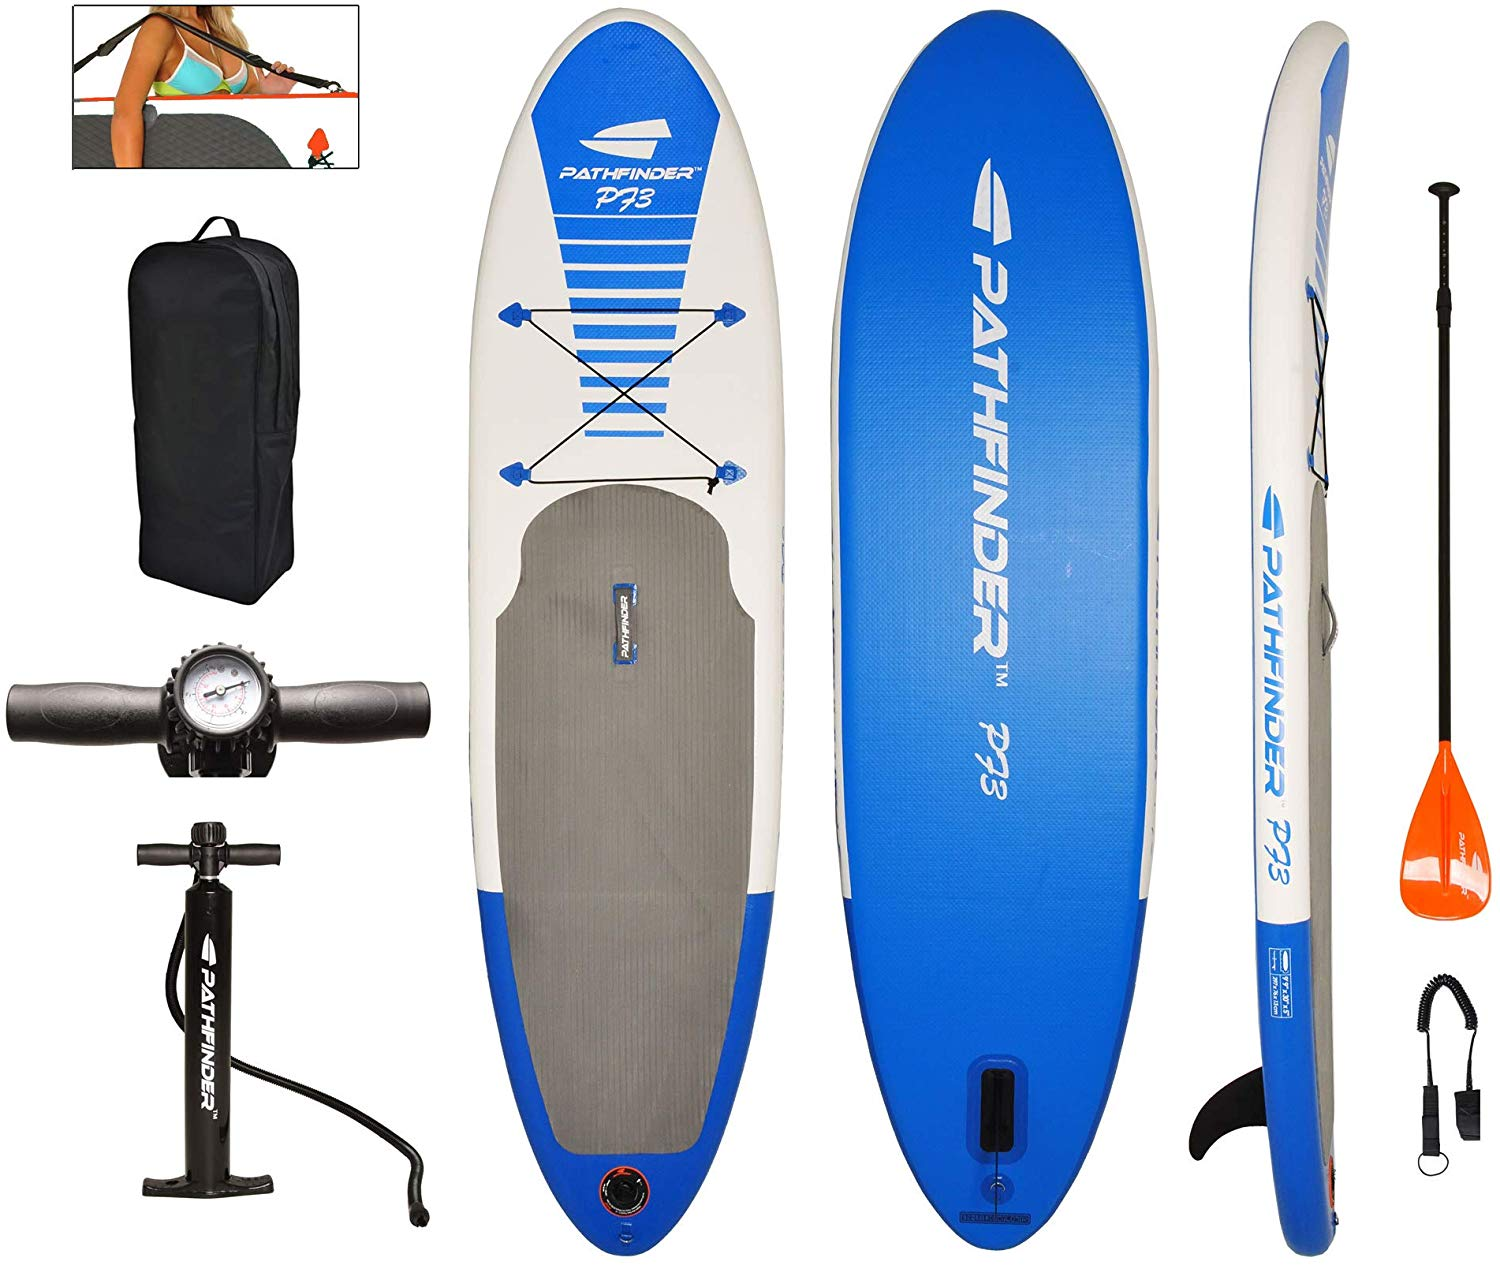 Pathfinder inflatable SUP set